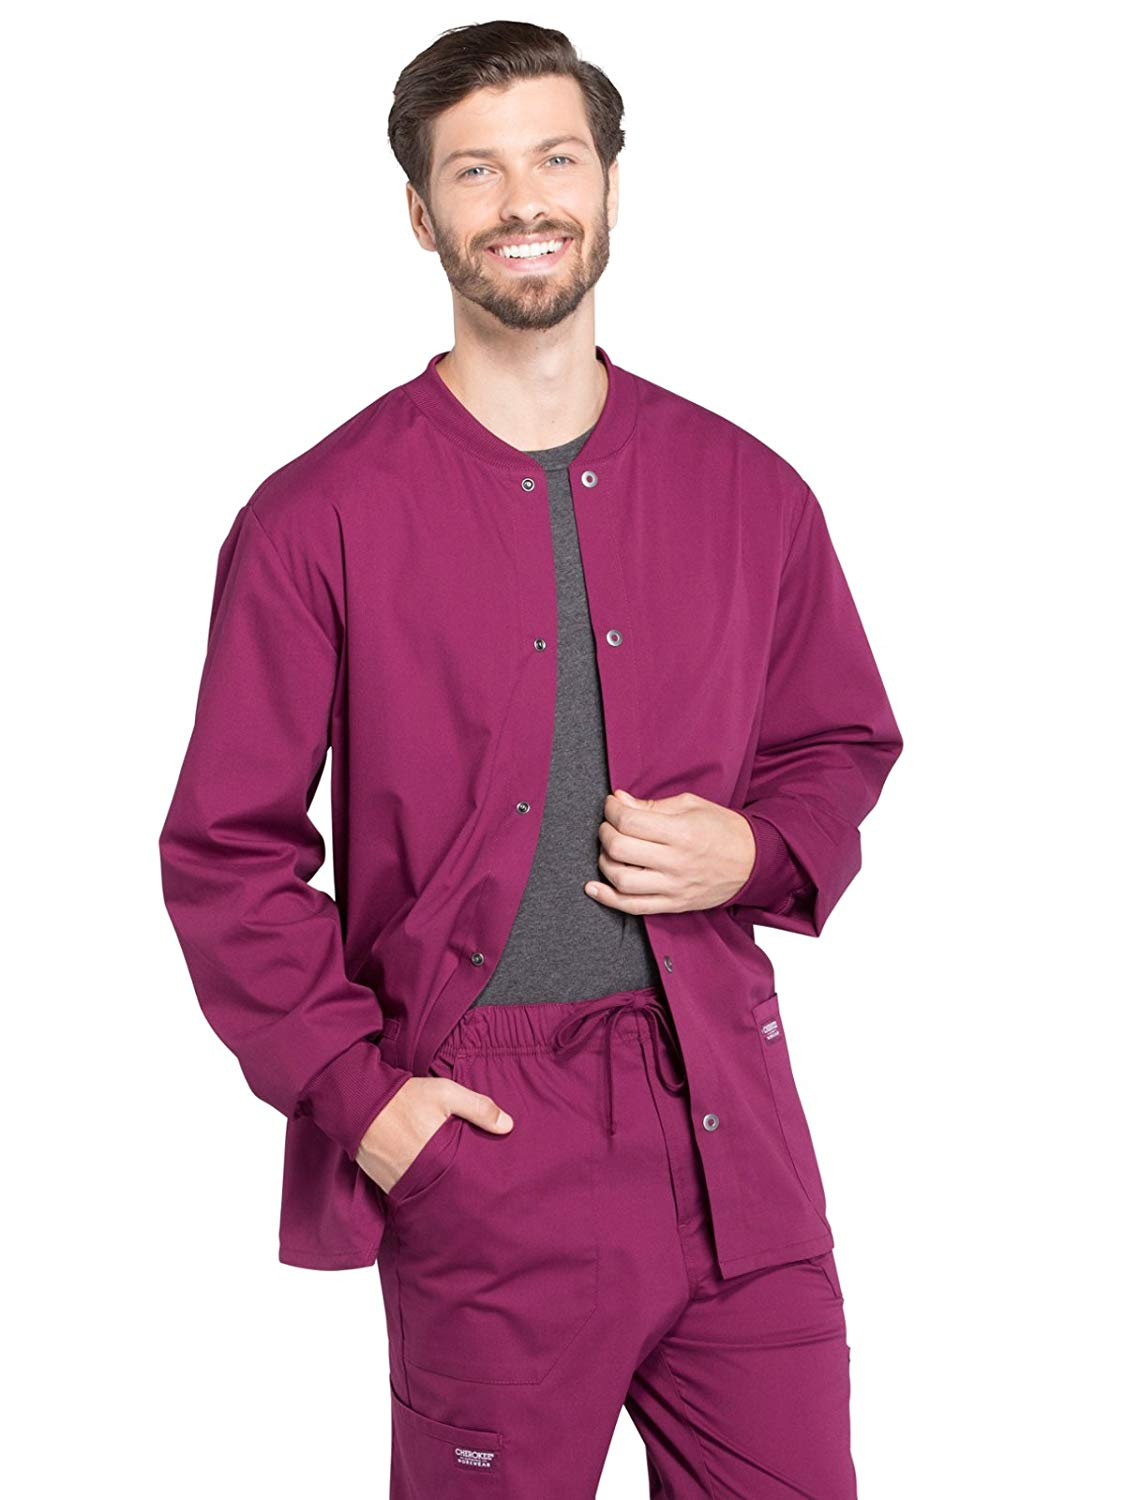 Cherokee Workwear Professionals WW360 Men's Snap Front Warm-Up Scrub Jacket